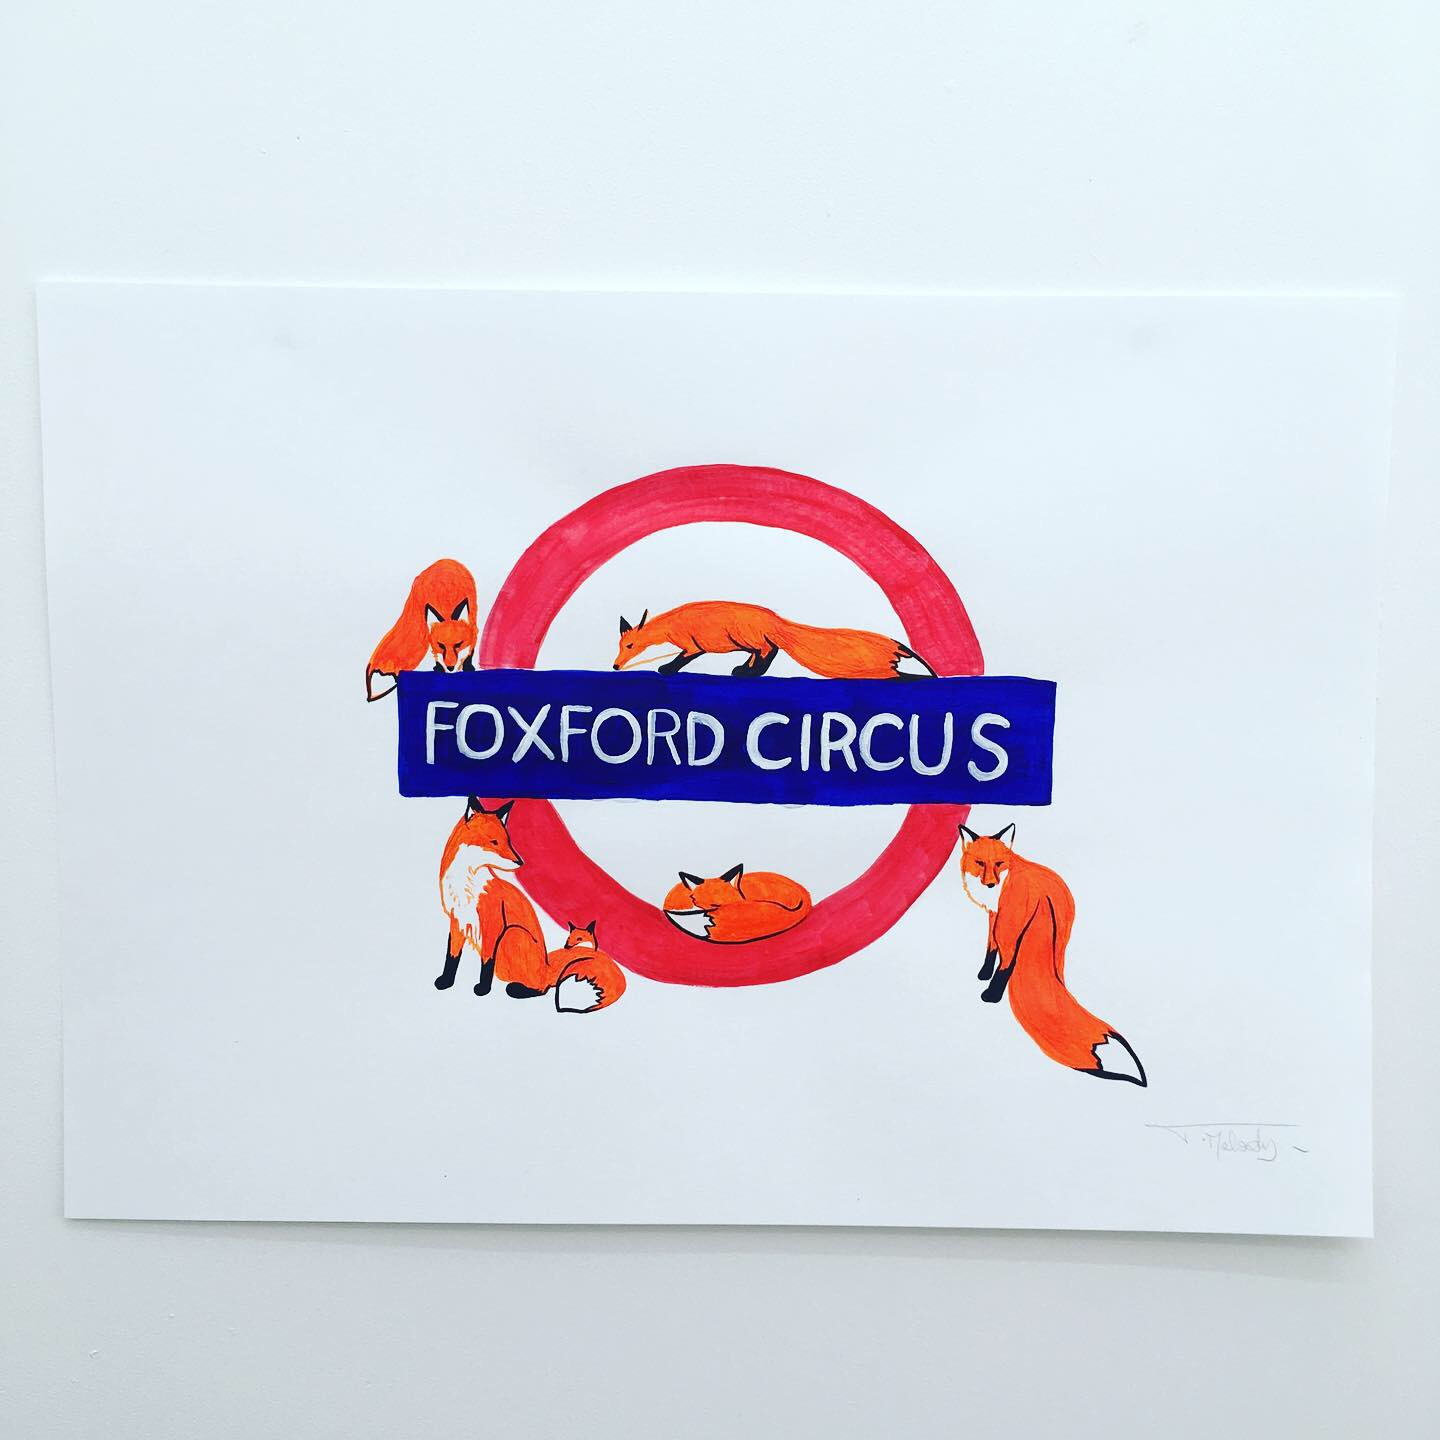 'Foxford Circus'  Acrylic on paper  This is another piece in my new style of painting with block colours. It's a fun play on words with foxes taking over Oxford Circus tube station. I initially wanted to paint a scene of foxes roaming along Oxford Street but I then got the idea of using the tube symbol and thought that would make for a stronger image.